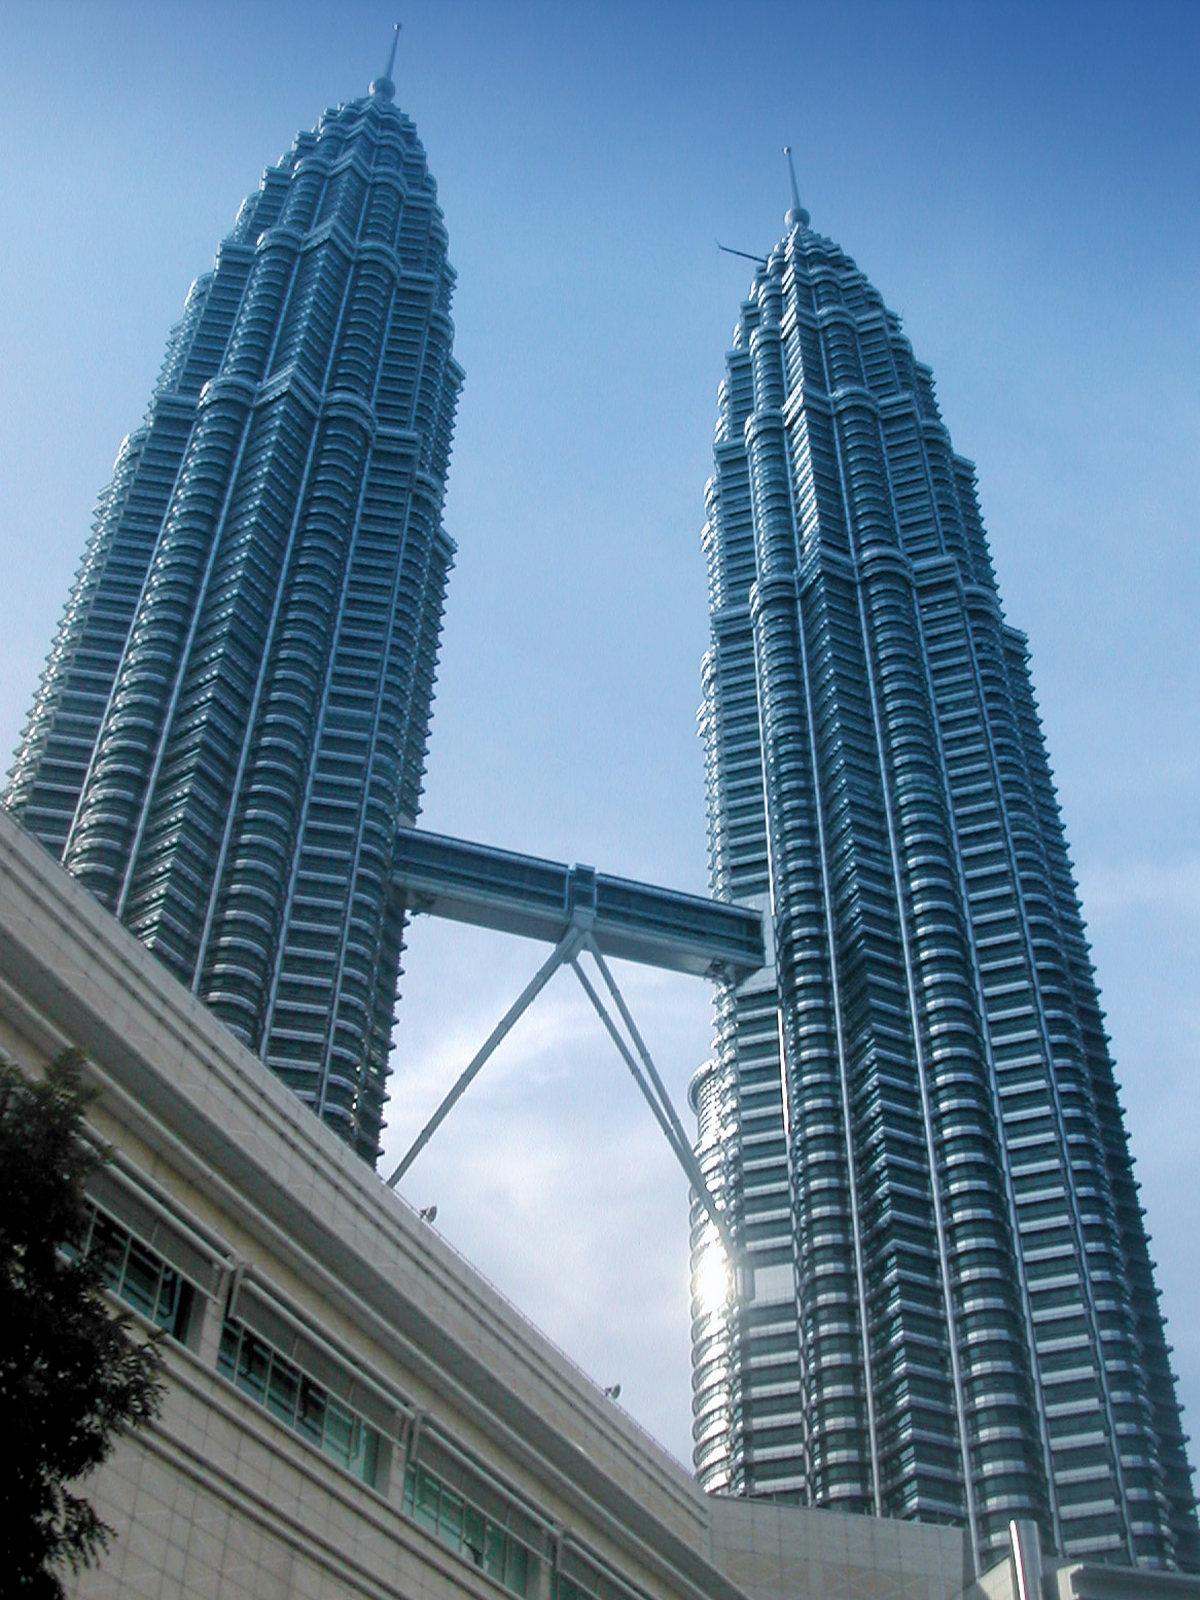 petronas buildings towers tower tall malaysia urban twin tallest build double sky retrofits company nottingham scrapers sustainability construction va section